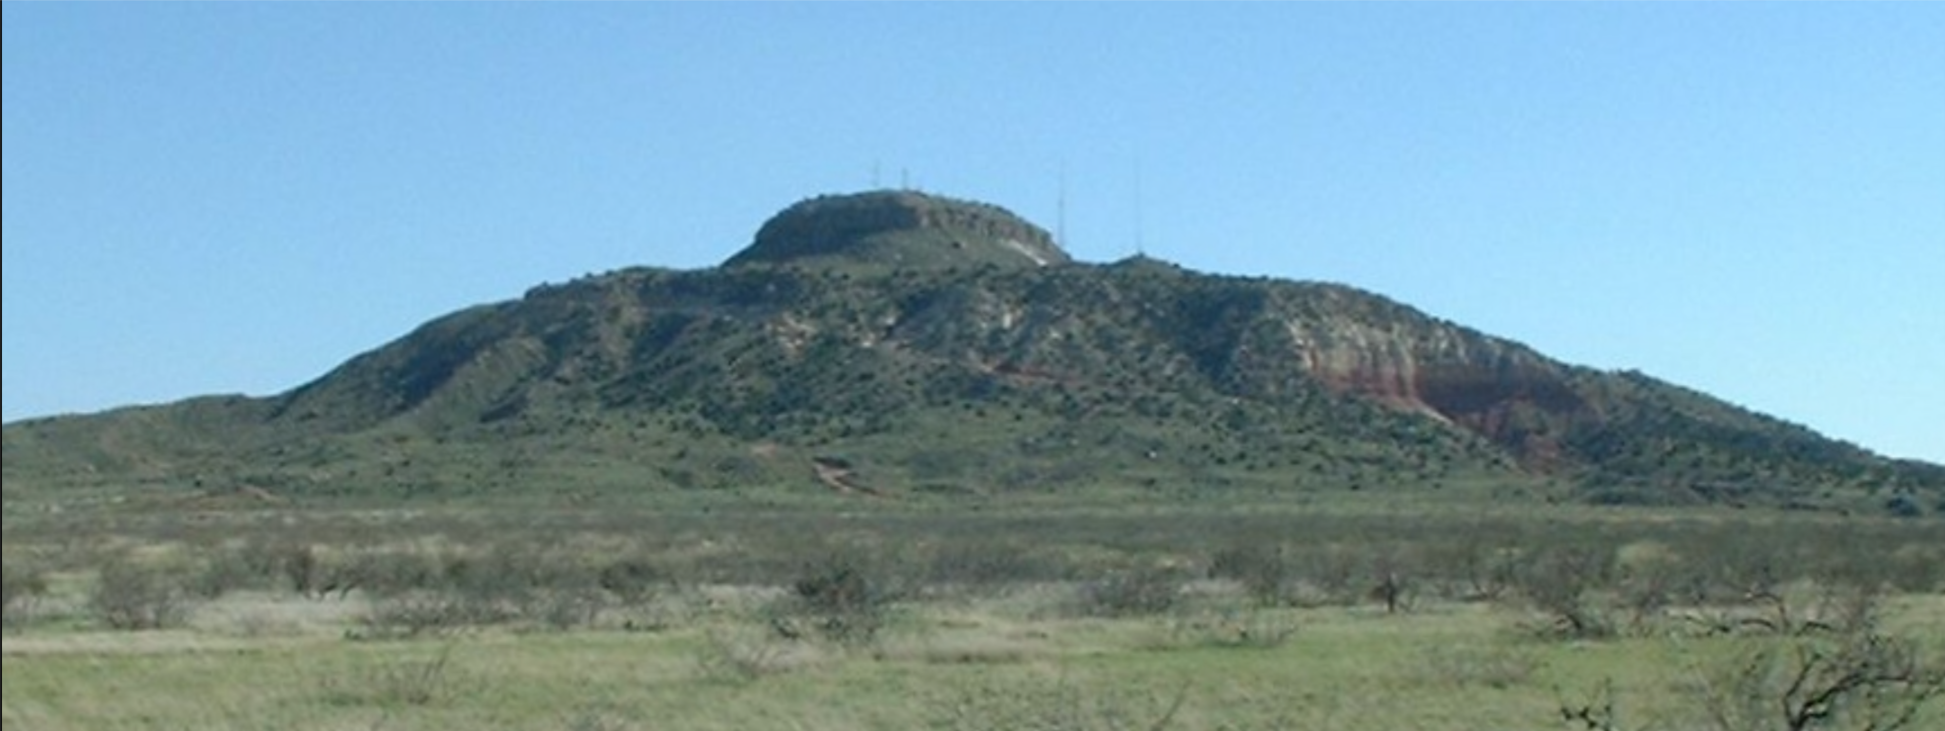 Tucumcari mountain Lots of green for such a hot part of the world.